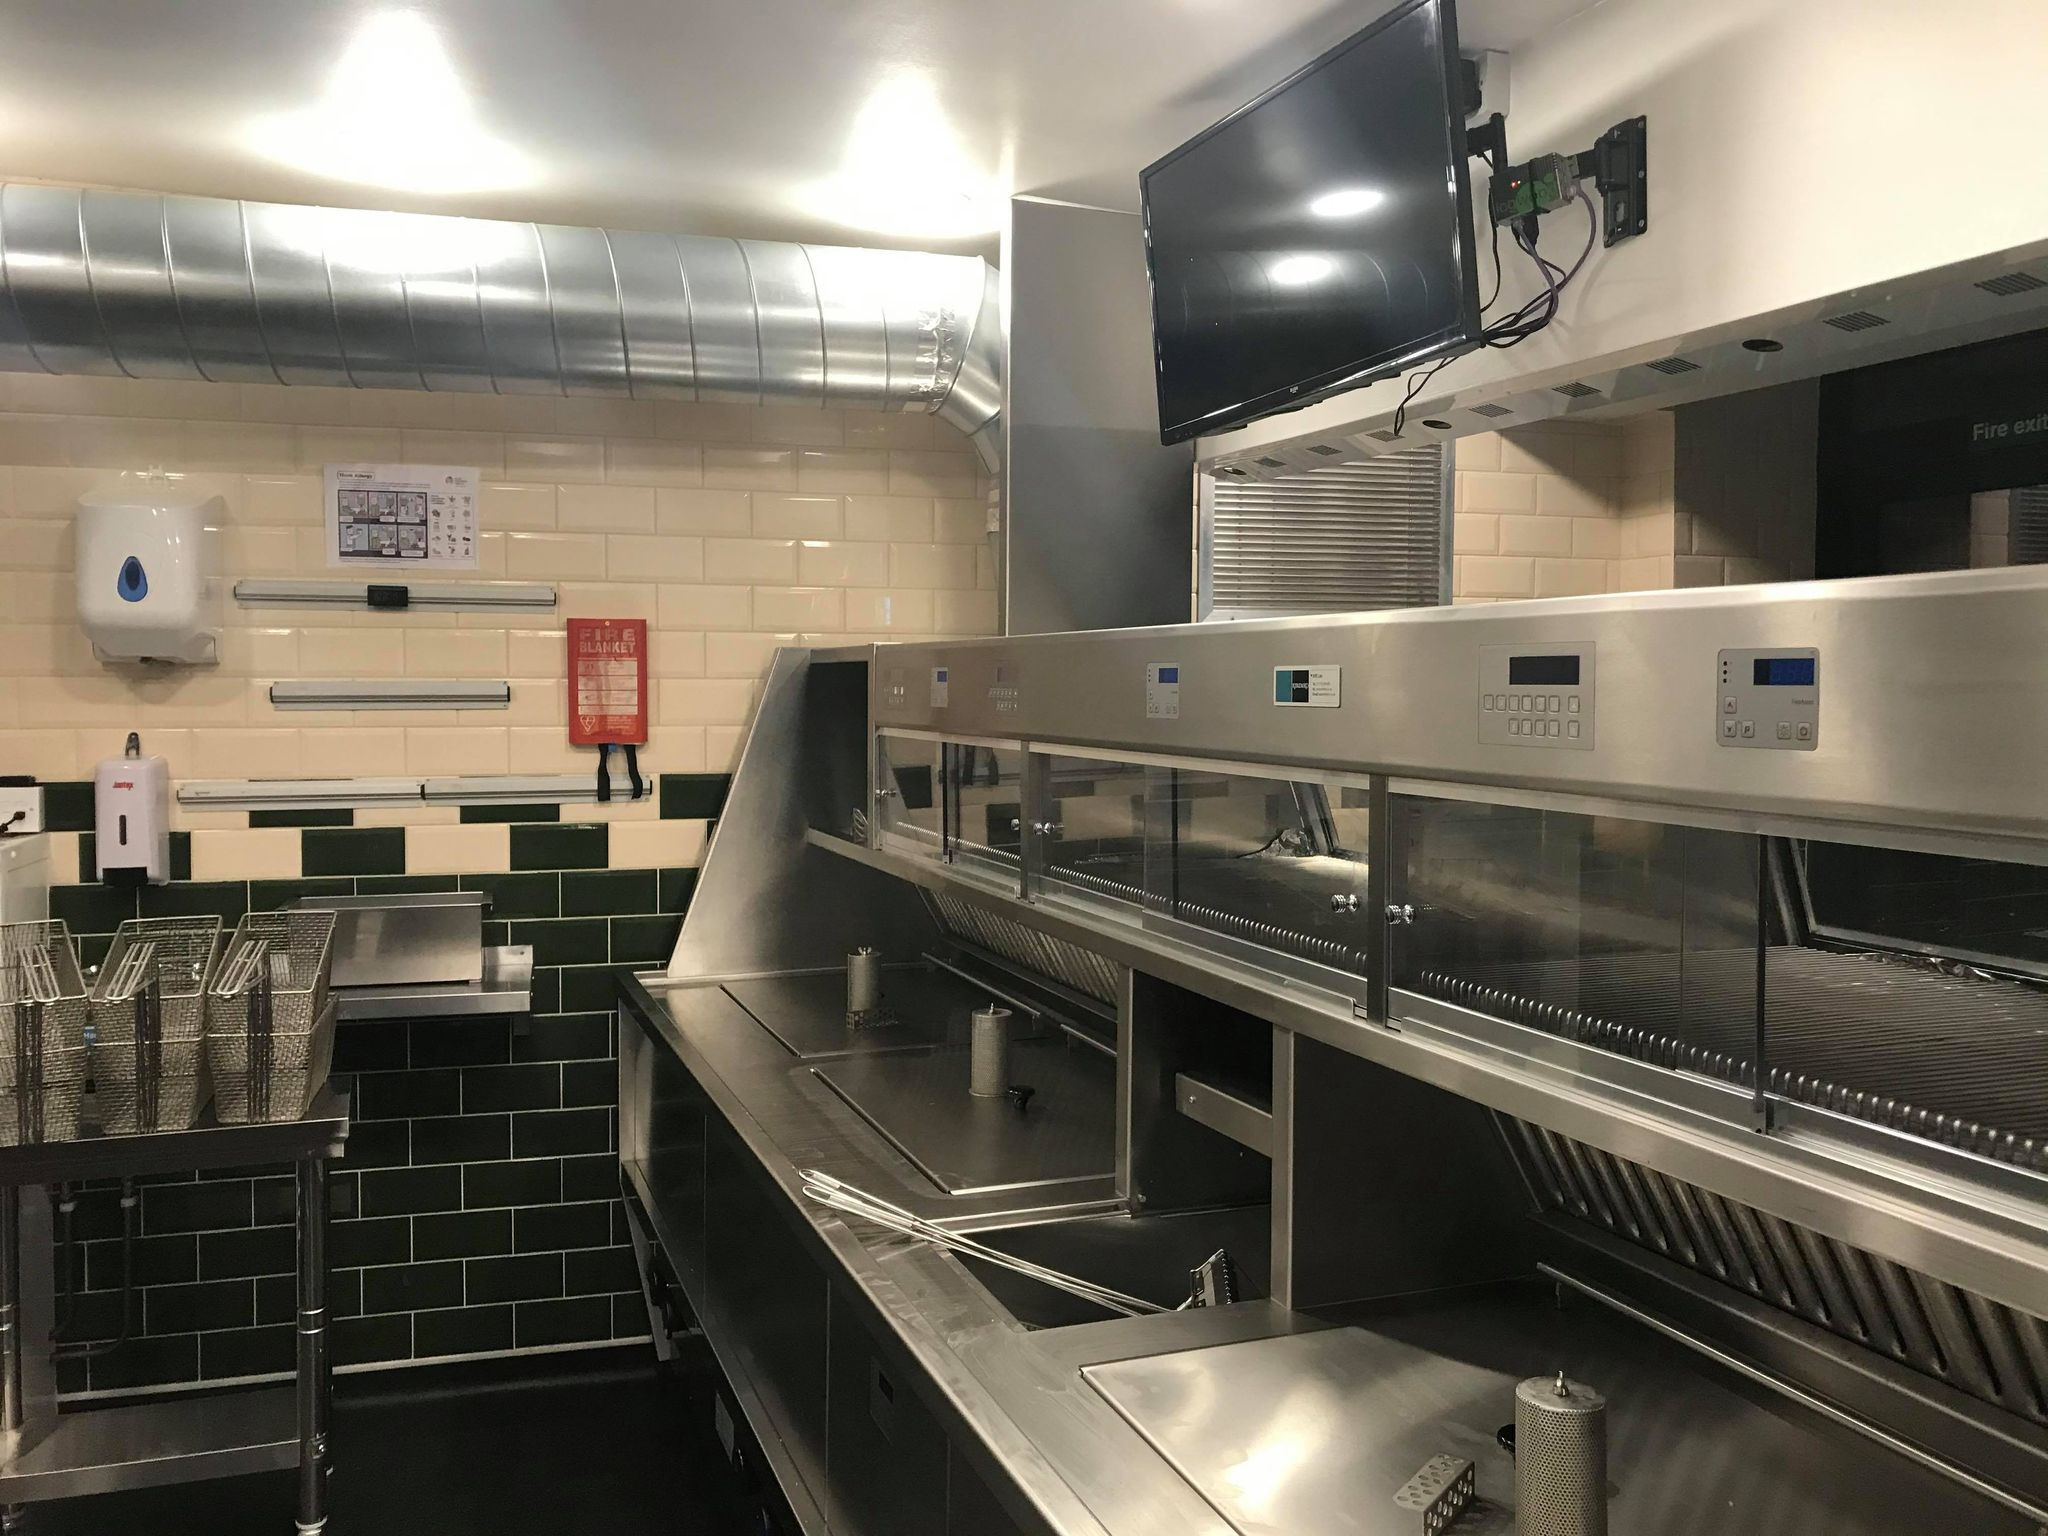 behind the new KFE range of the new Burton road chippy in Lincoln.